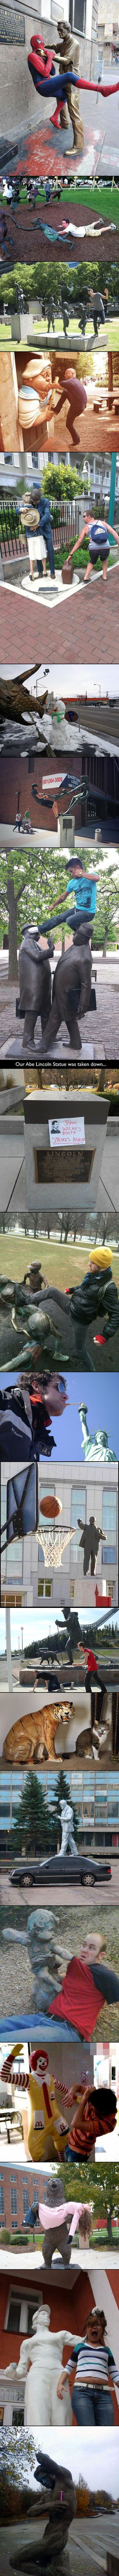 Here are some people who are having way too much fun with statues.